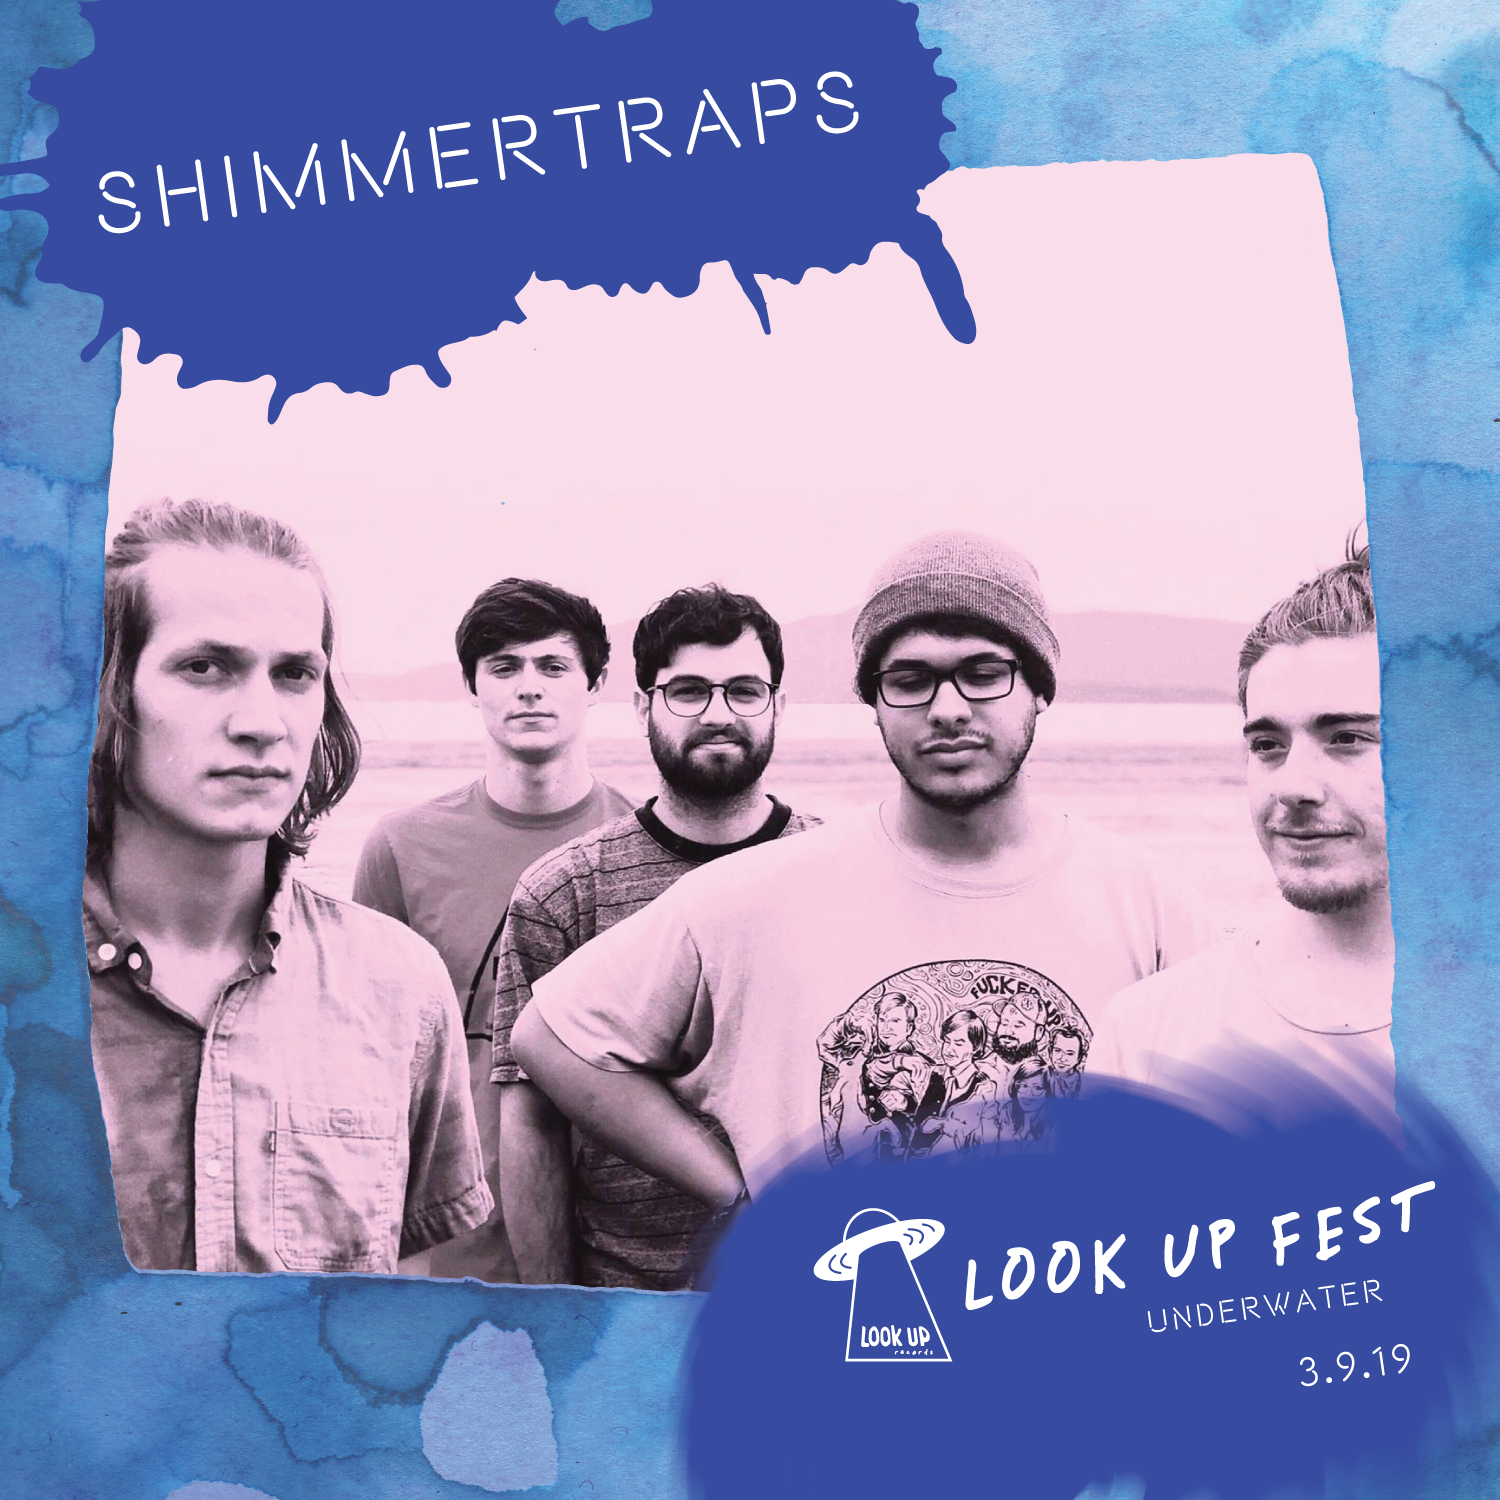 SHIMMERTRAPS - Shimmertraps is a five-piece band that blends indie rock, psych, and dream pop music into their own sound. Based in Bellingham, WA, the band was started as a recording project by Zack Moses and Kyle Menne in 2016. Paying equal attention to both music and imagery, they bring together a combination of eclectic sounds and pleasing visuals.